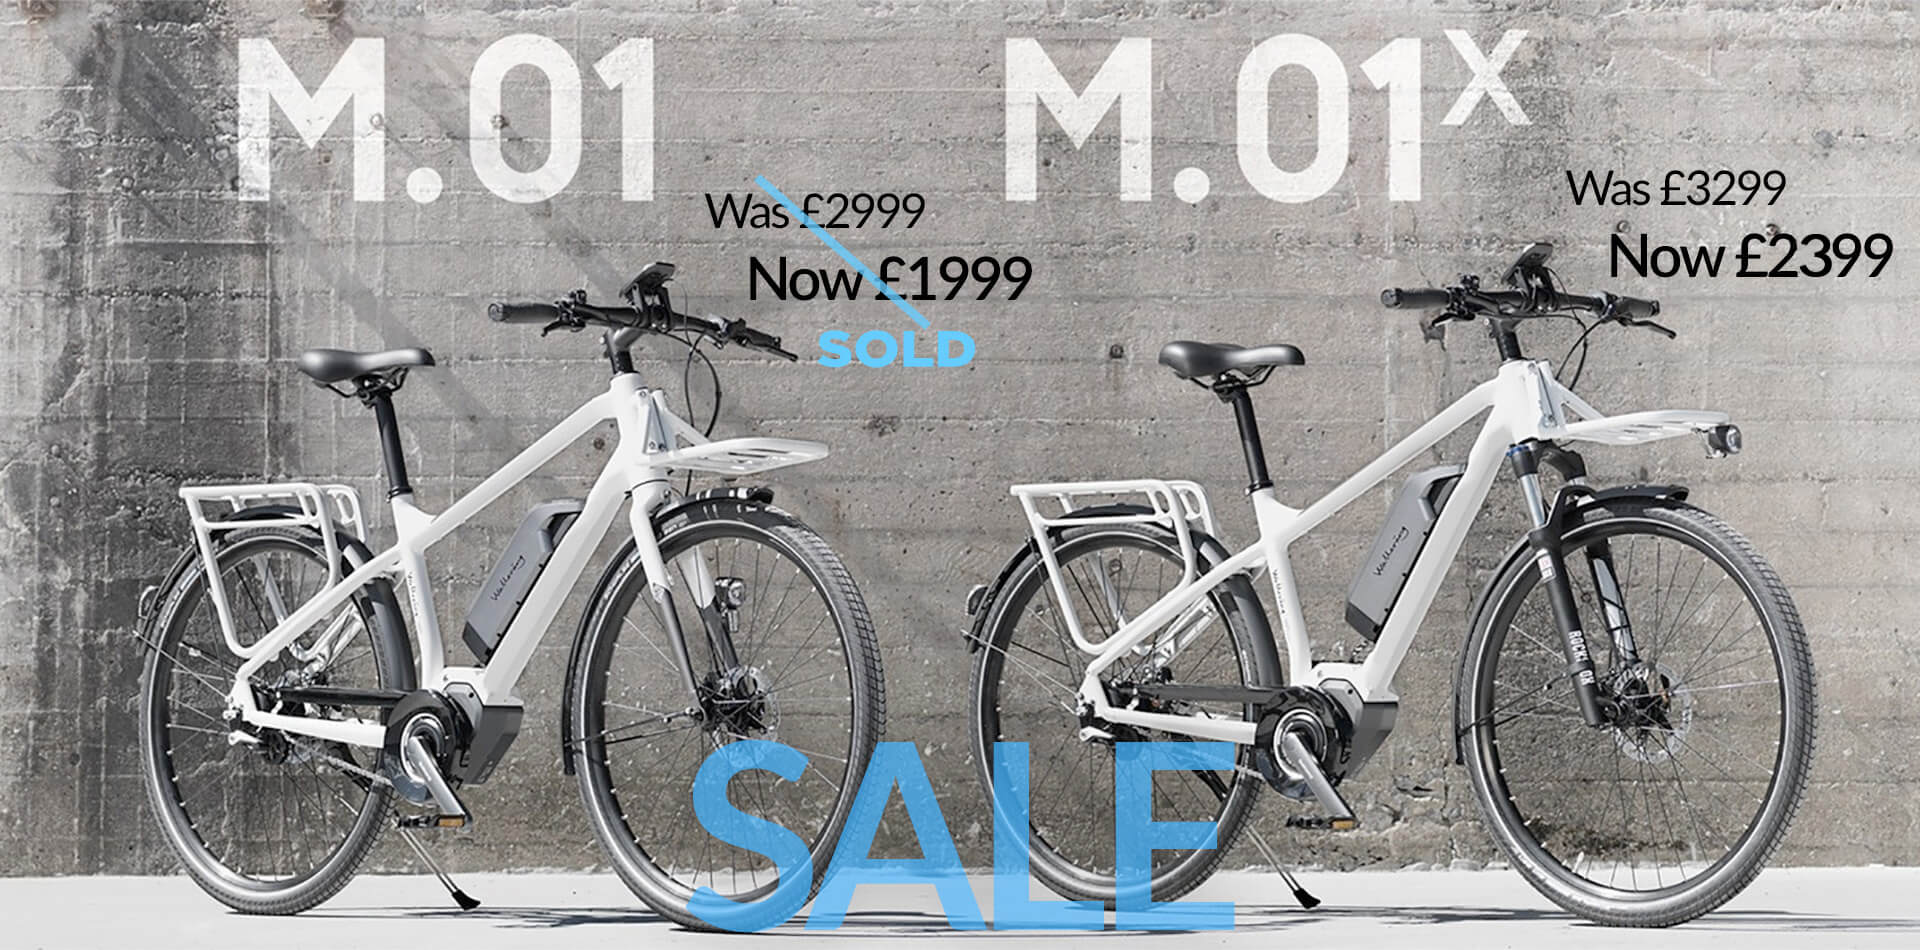 https://electric-bike-store.co.uk/wp-content/uploads/2019/01/wallerang-flash-sale.jpg